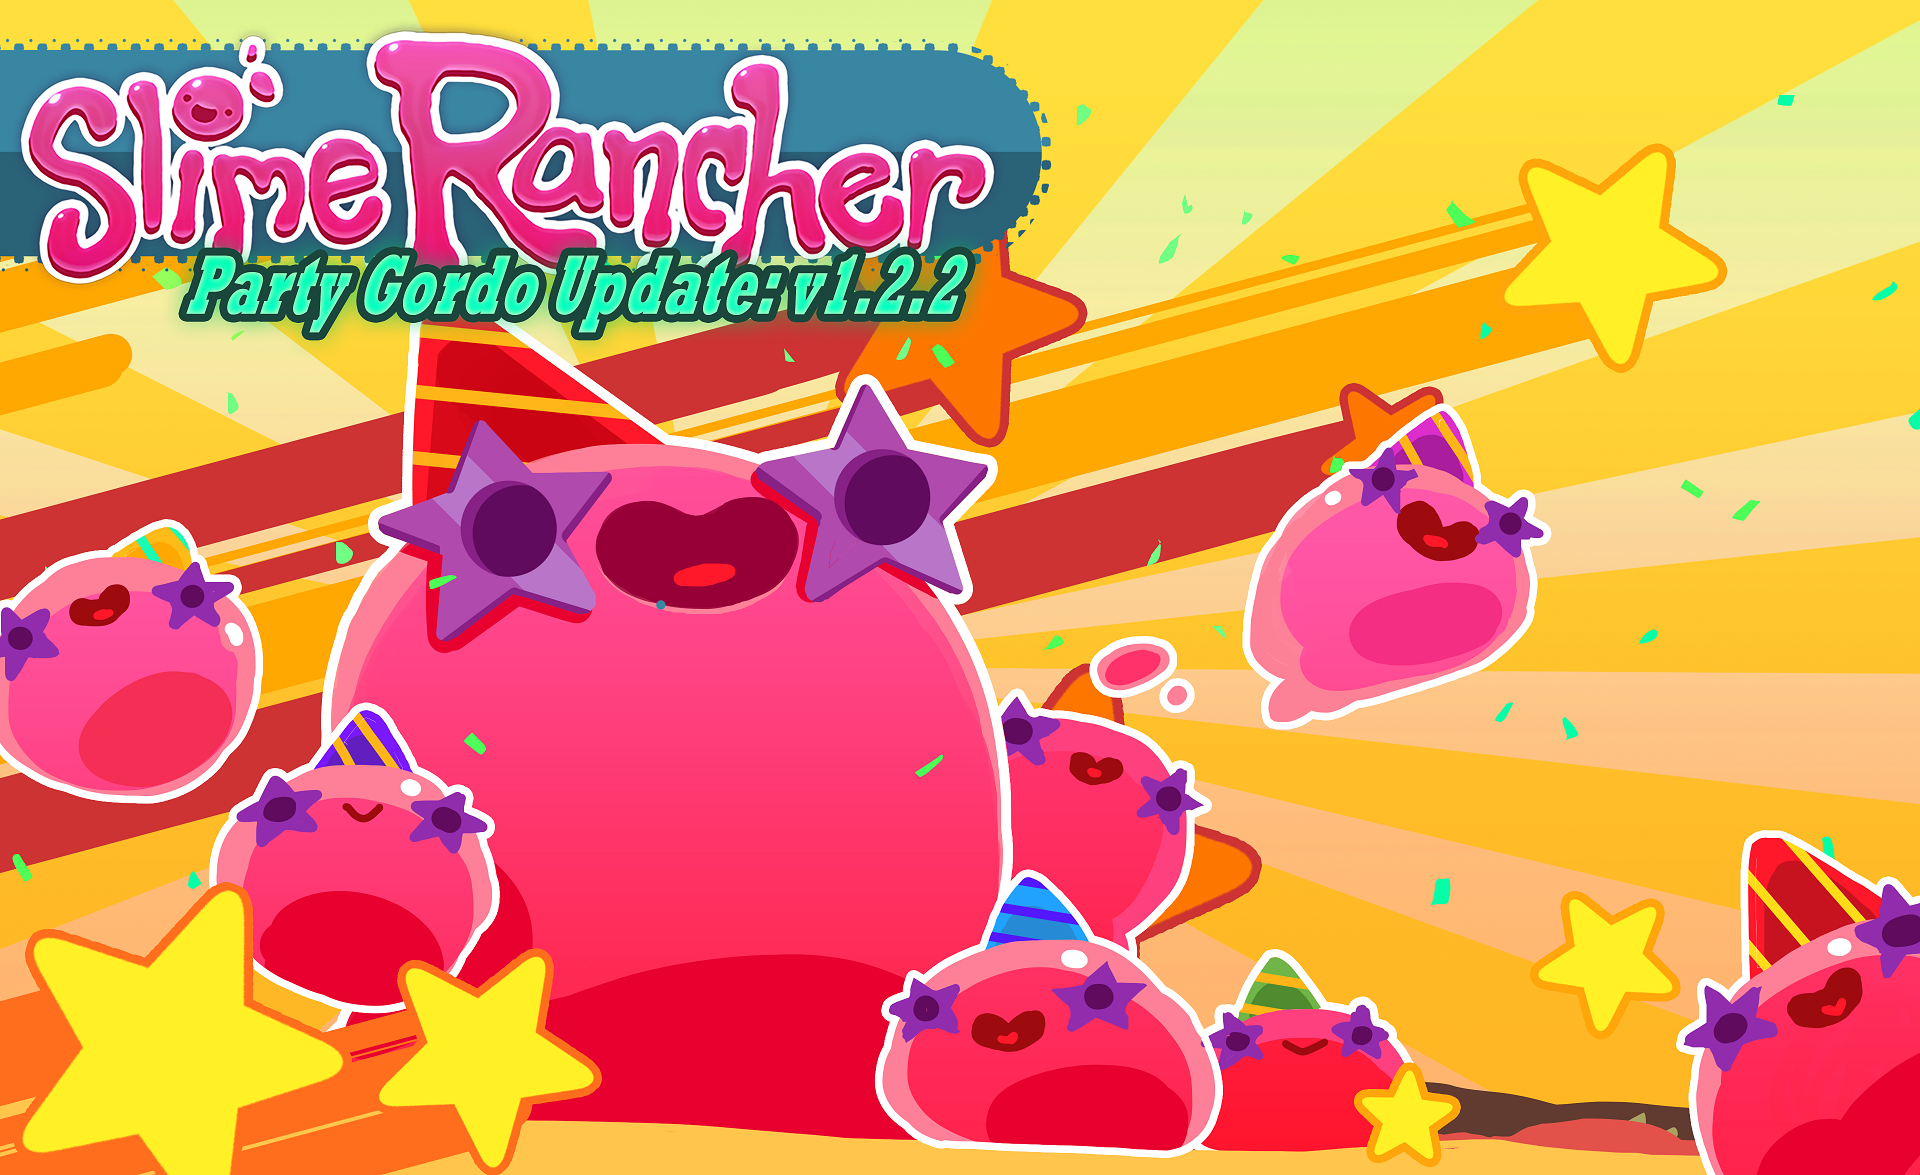 Slime Rancher Christmas 2020 Steam Community :: Guide :: Party and Twinkle Slime Gif Locations 2020